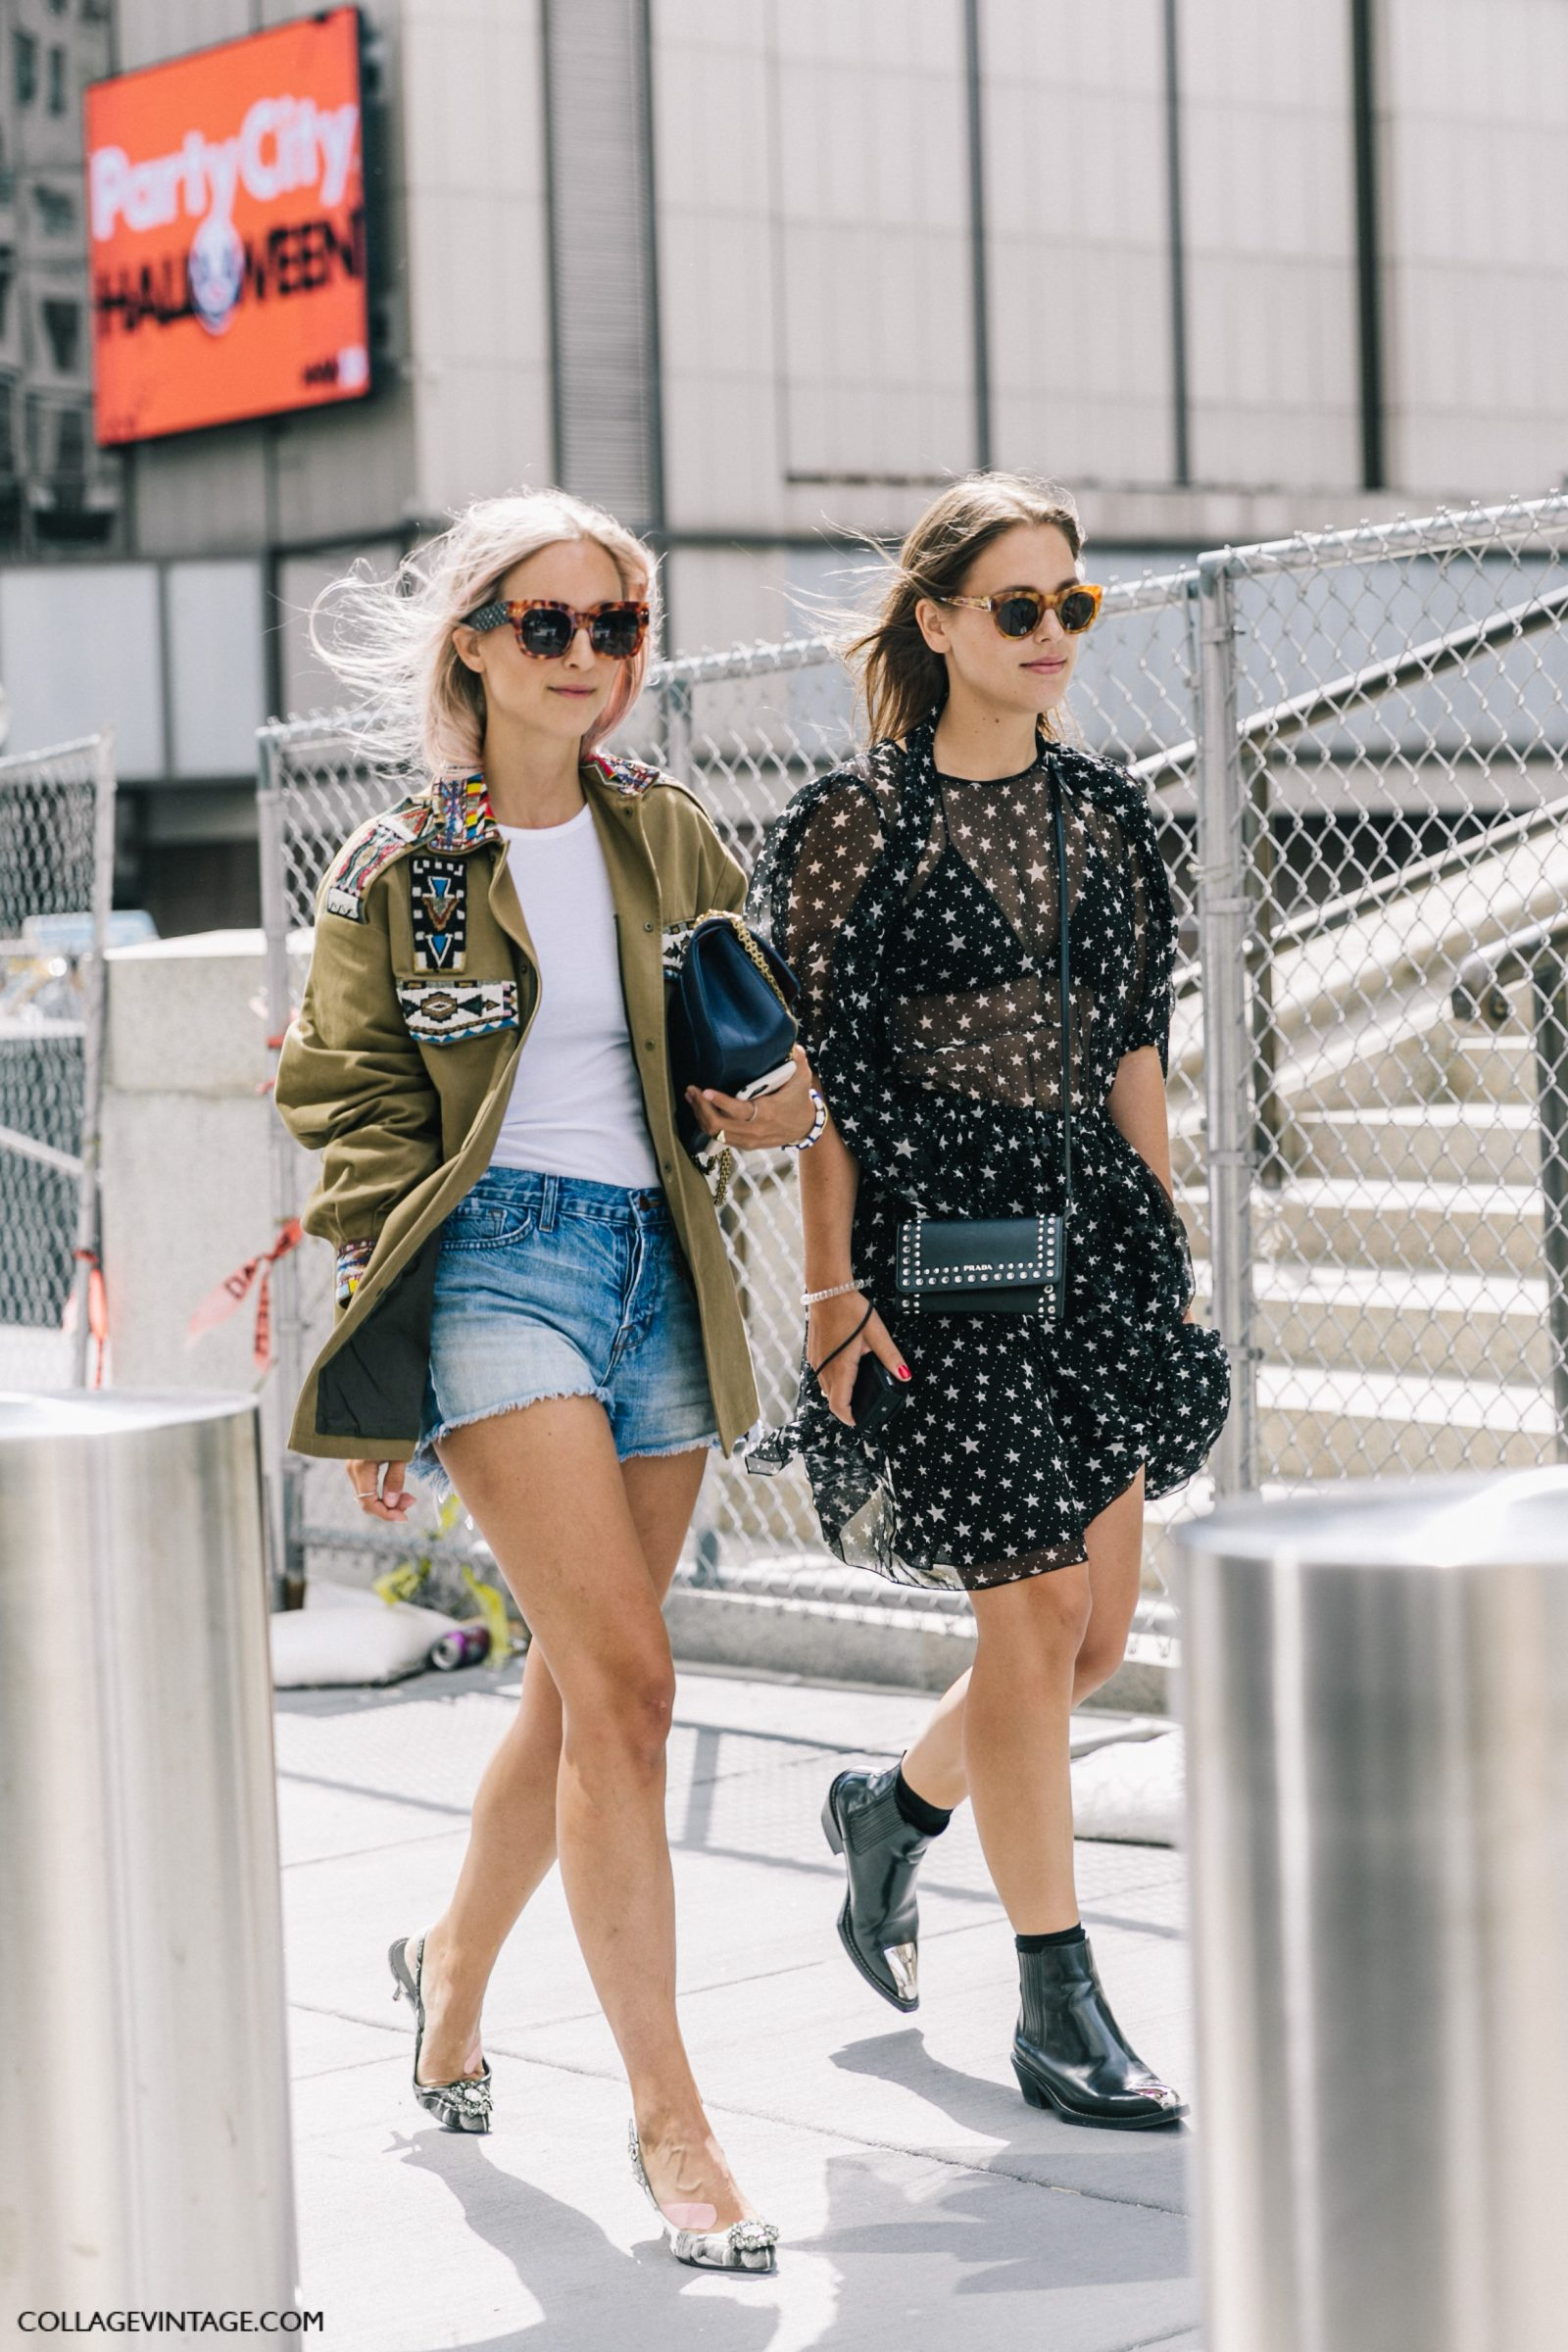 nyfw-new_york_fashion_week_ss17-street_style-outfits-collage_vintage-vintage-tome-18